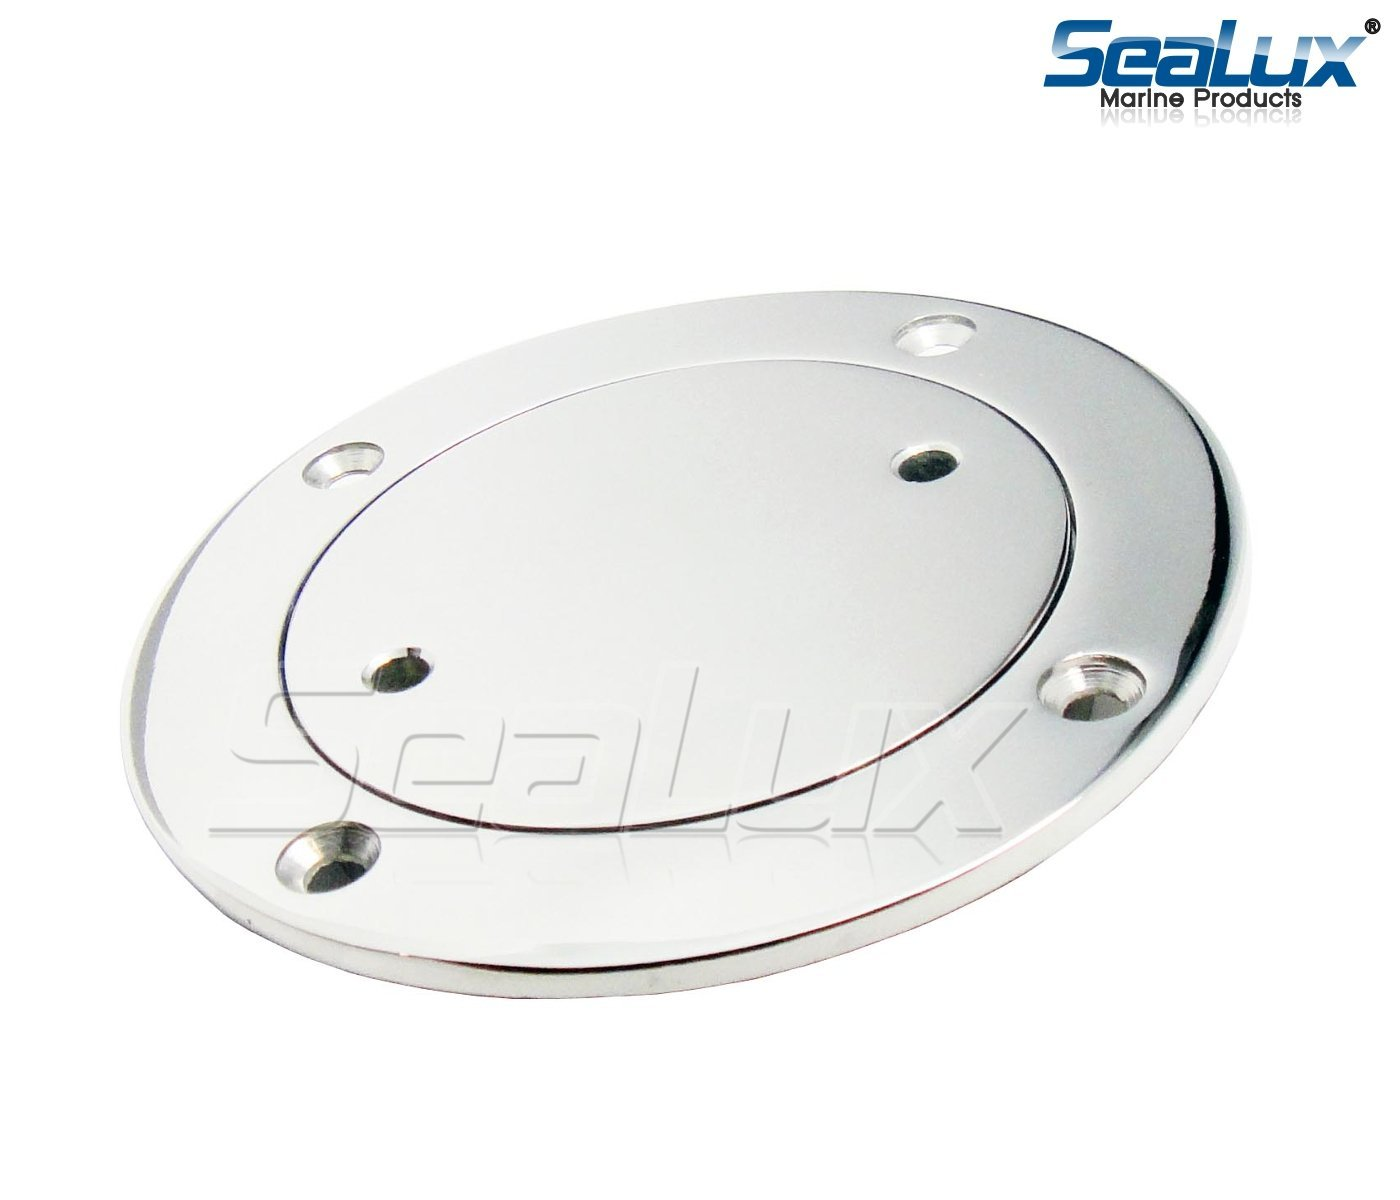 SeaLux 316 Stainless Steel Deck Plate for Cowl Vent, Dorade Box vent, (I.D. 4'') by SeaLux Marine Products